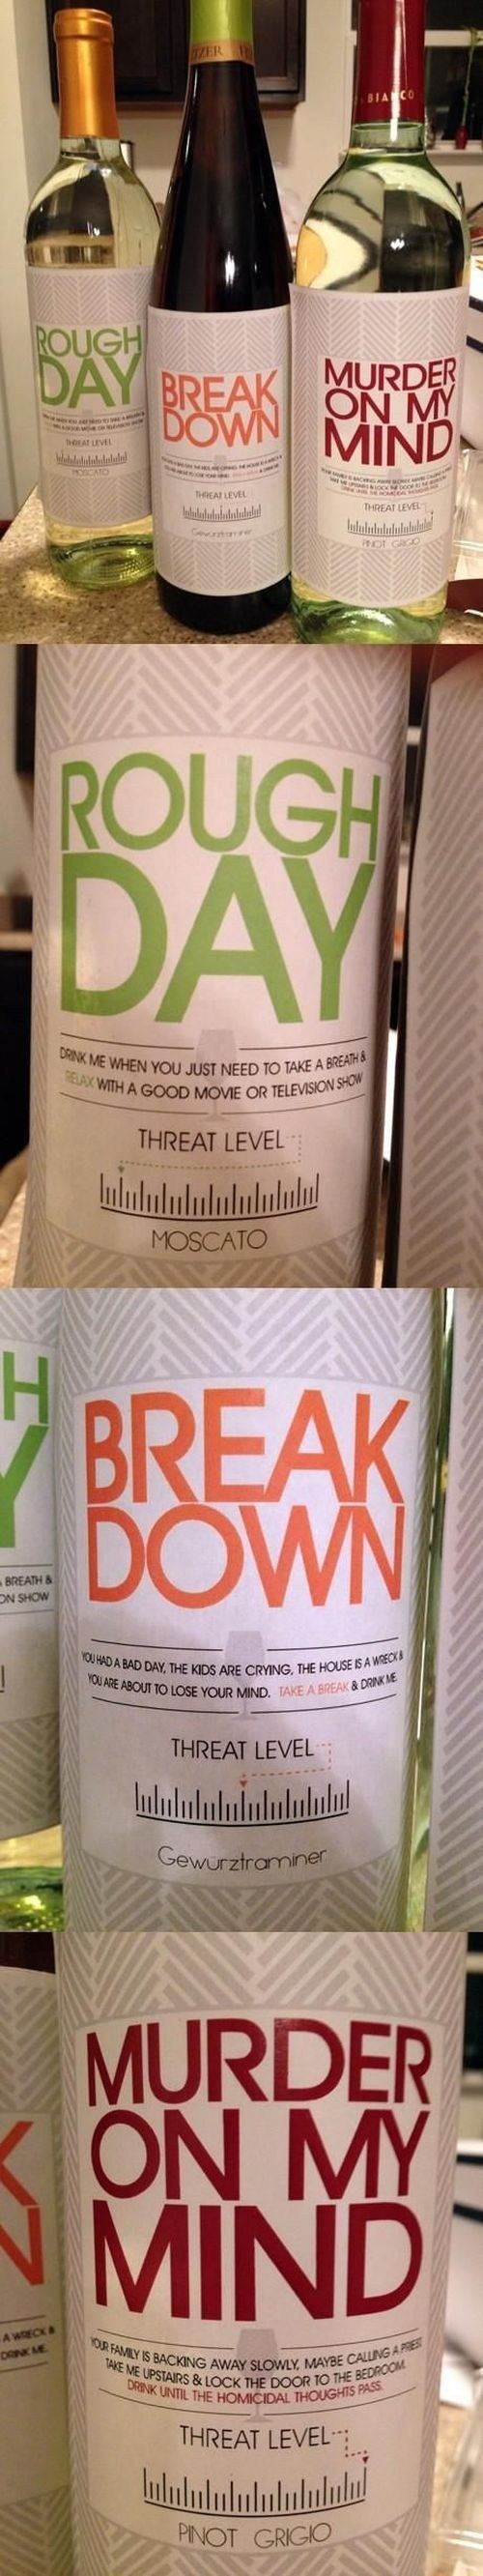 labels wine threat level funny after 12 g rated - 8115508736